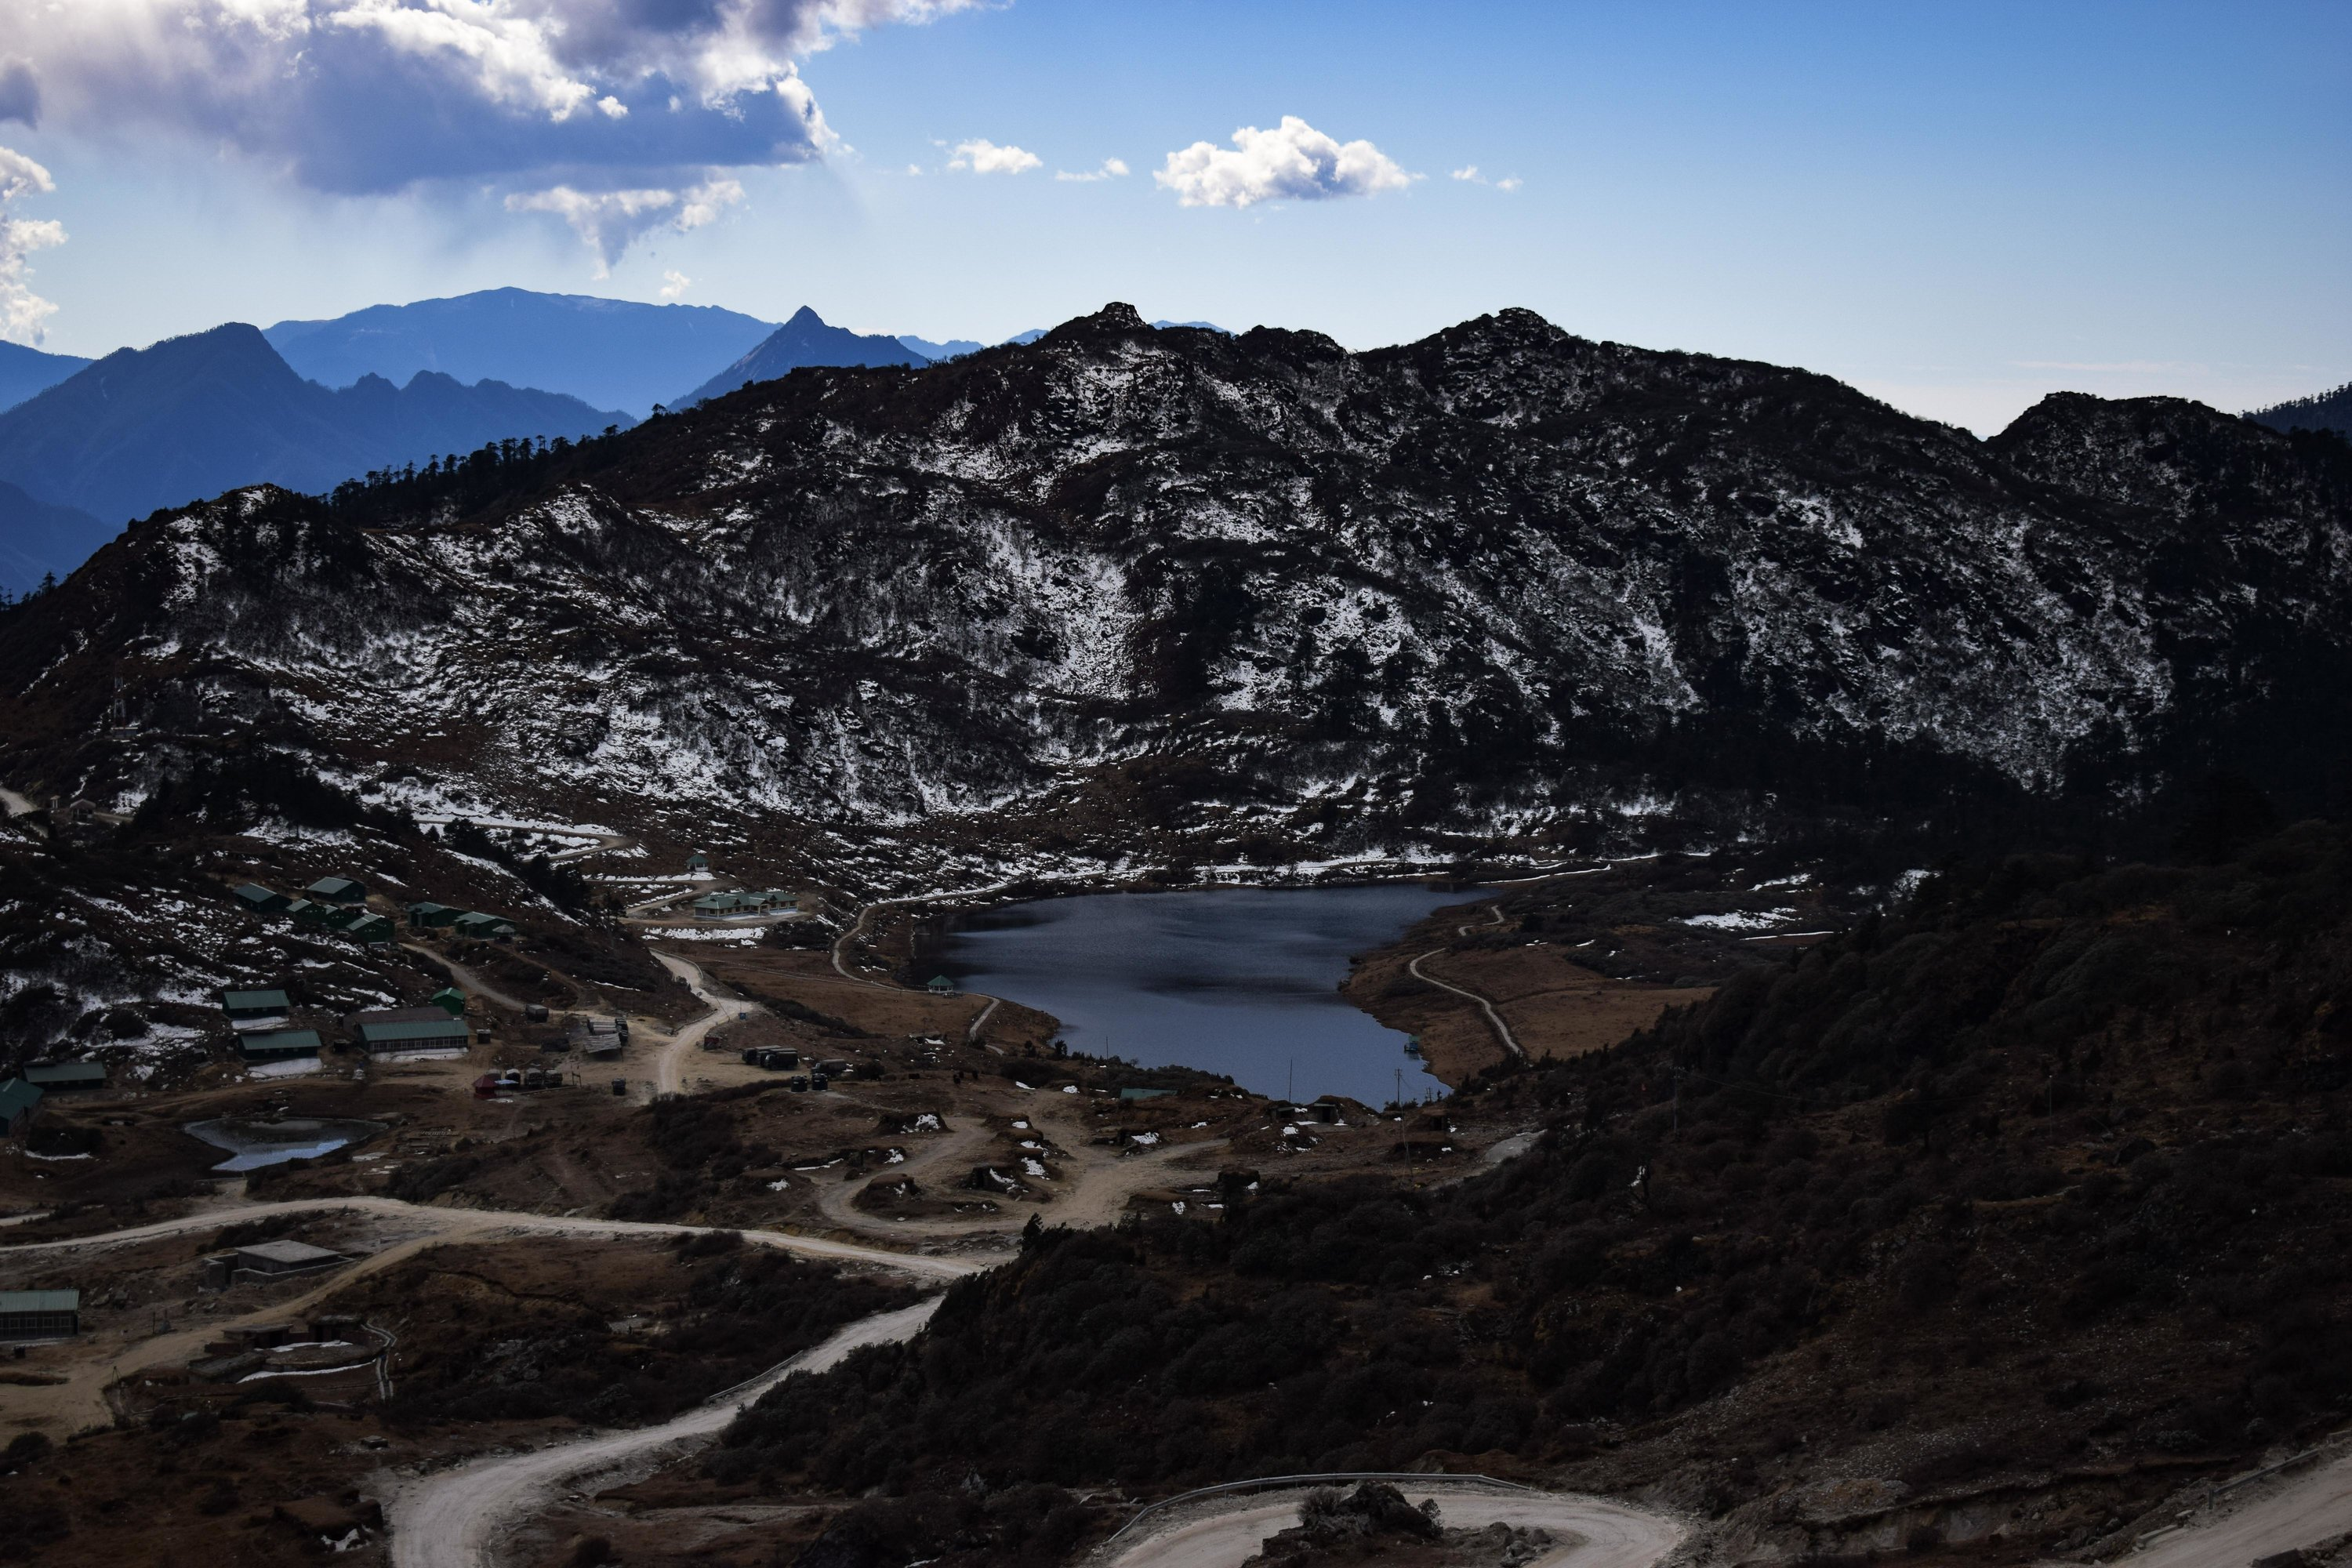 ESSENTIAL TRAVEL TIPS for TRAVELING TO TAWANG, ARUNACHAL PRADESH: Things to Know Before You go!